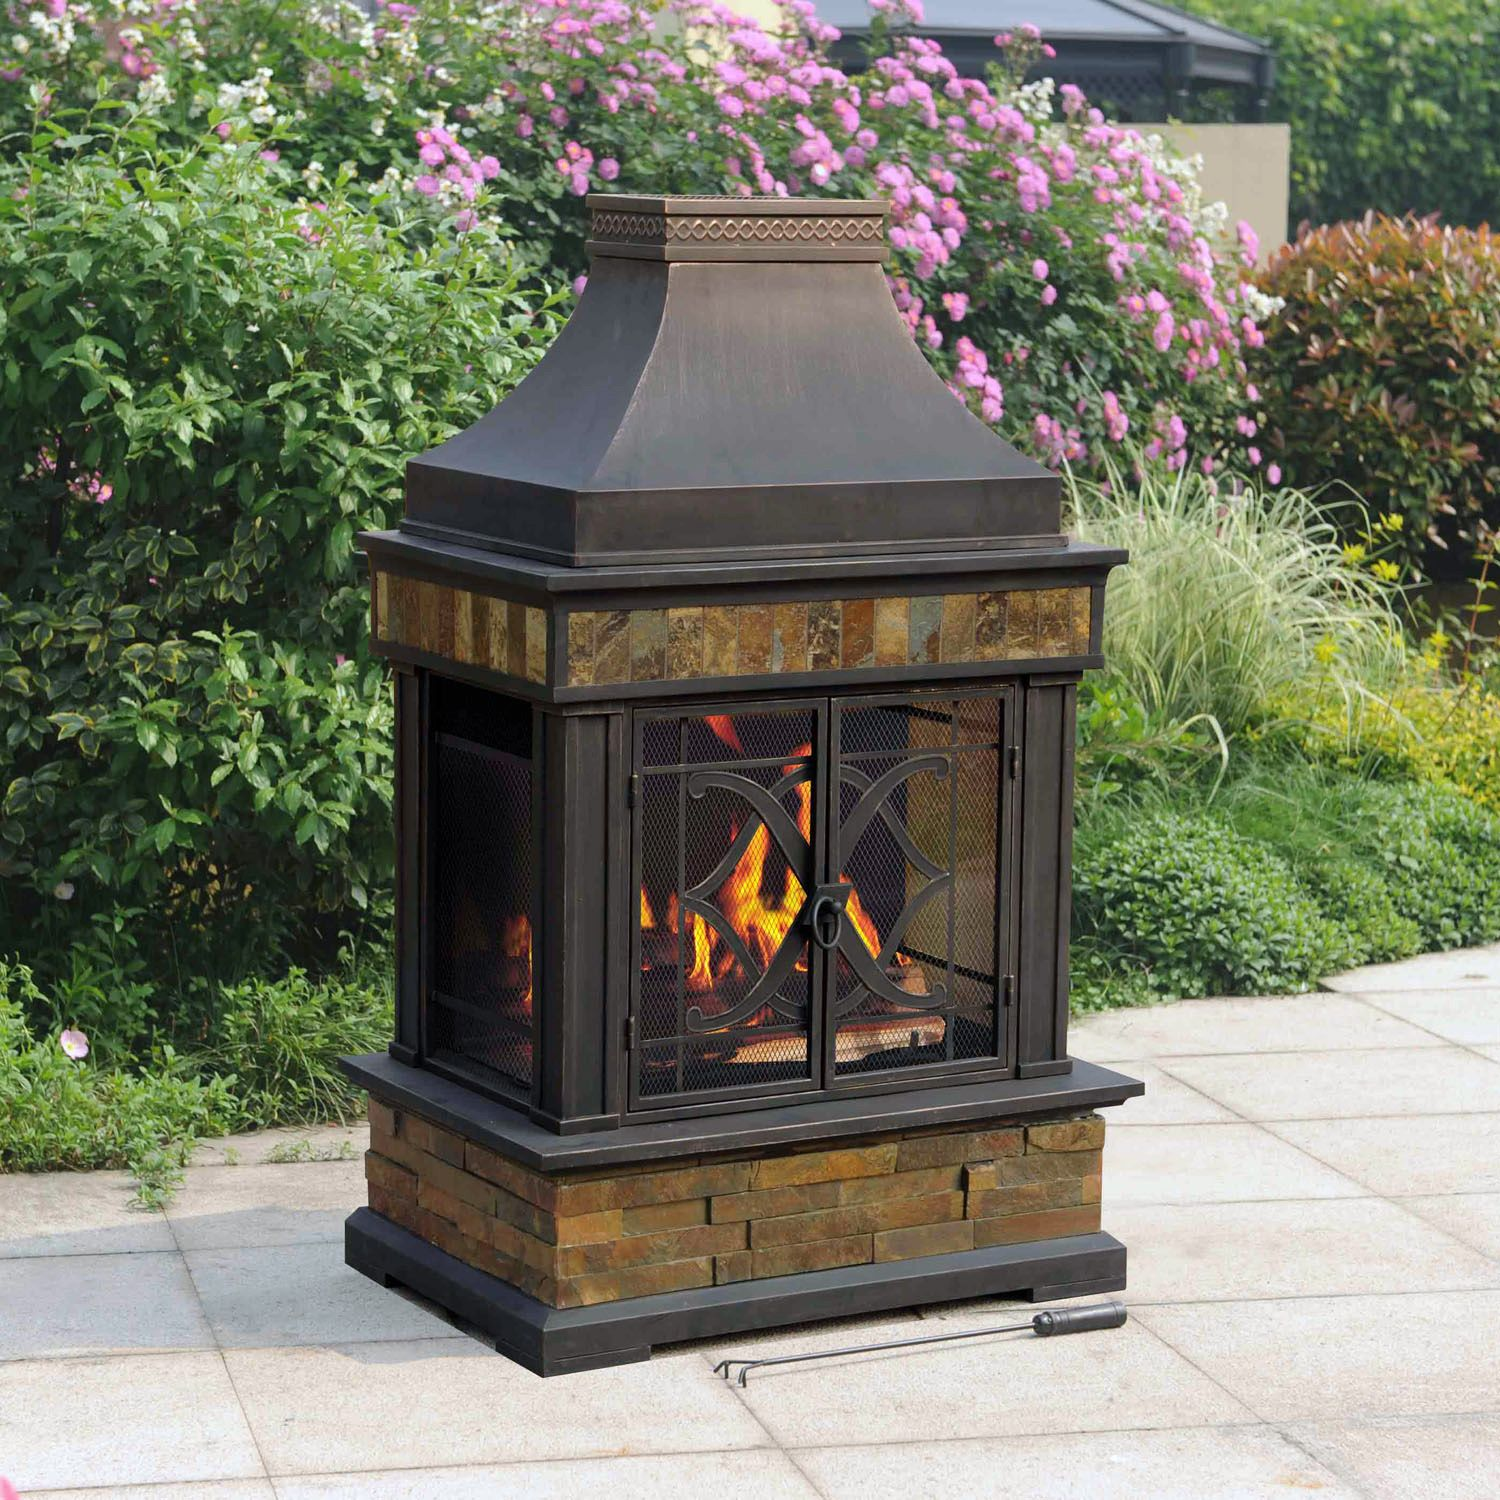 Chimney Outdoor Fire Pit : FIREPLACE DESIGN IDEAS